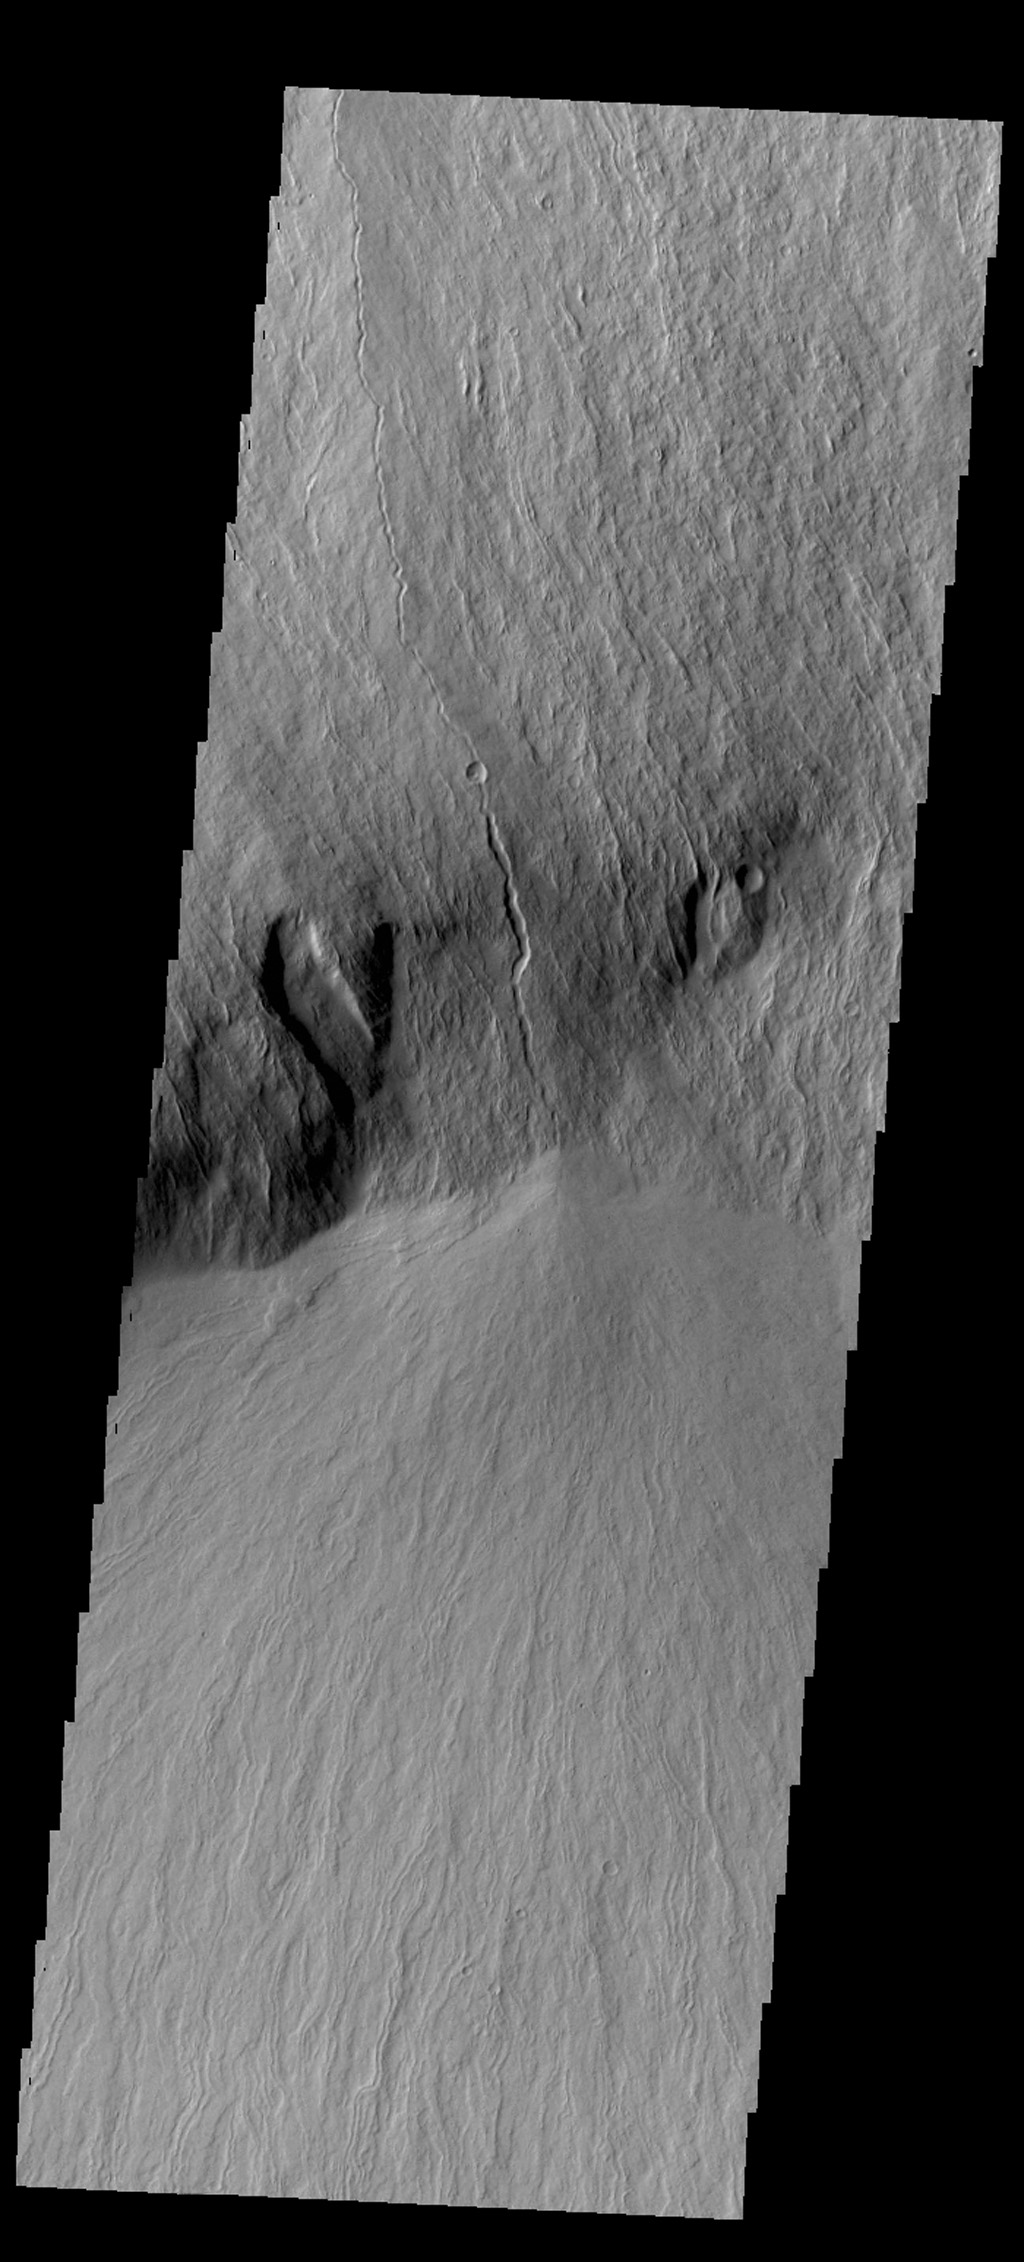 Olympus Mons is surrounded by a steep escarpment called Olympus Rupes. This image from NASA's 2001 Mars Odyssey spacecraft shows this escarpment and lava flows that plunged over it.